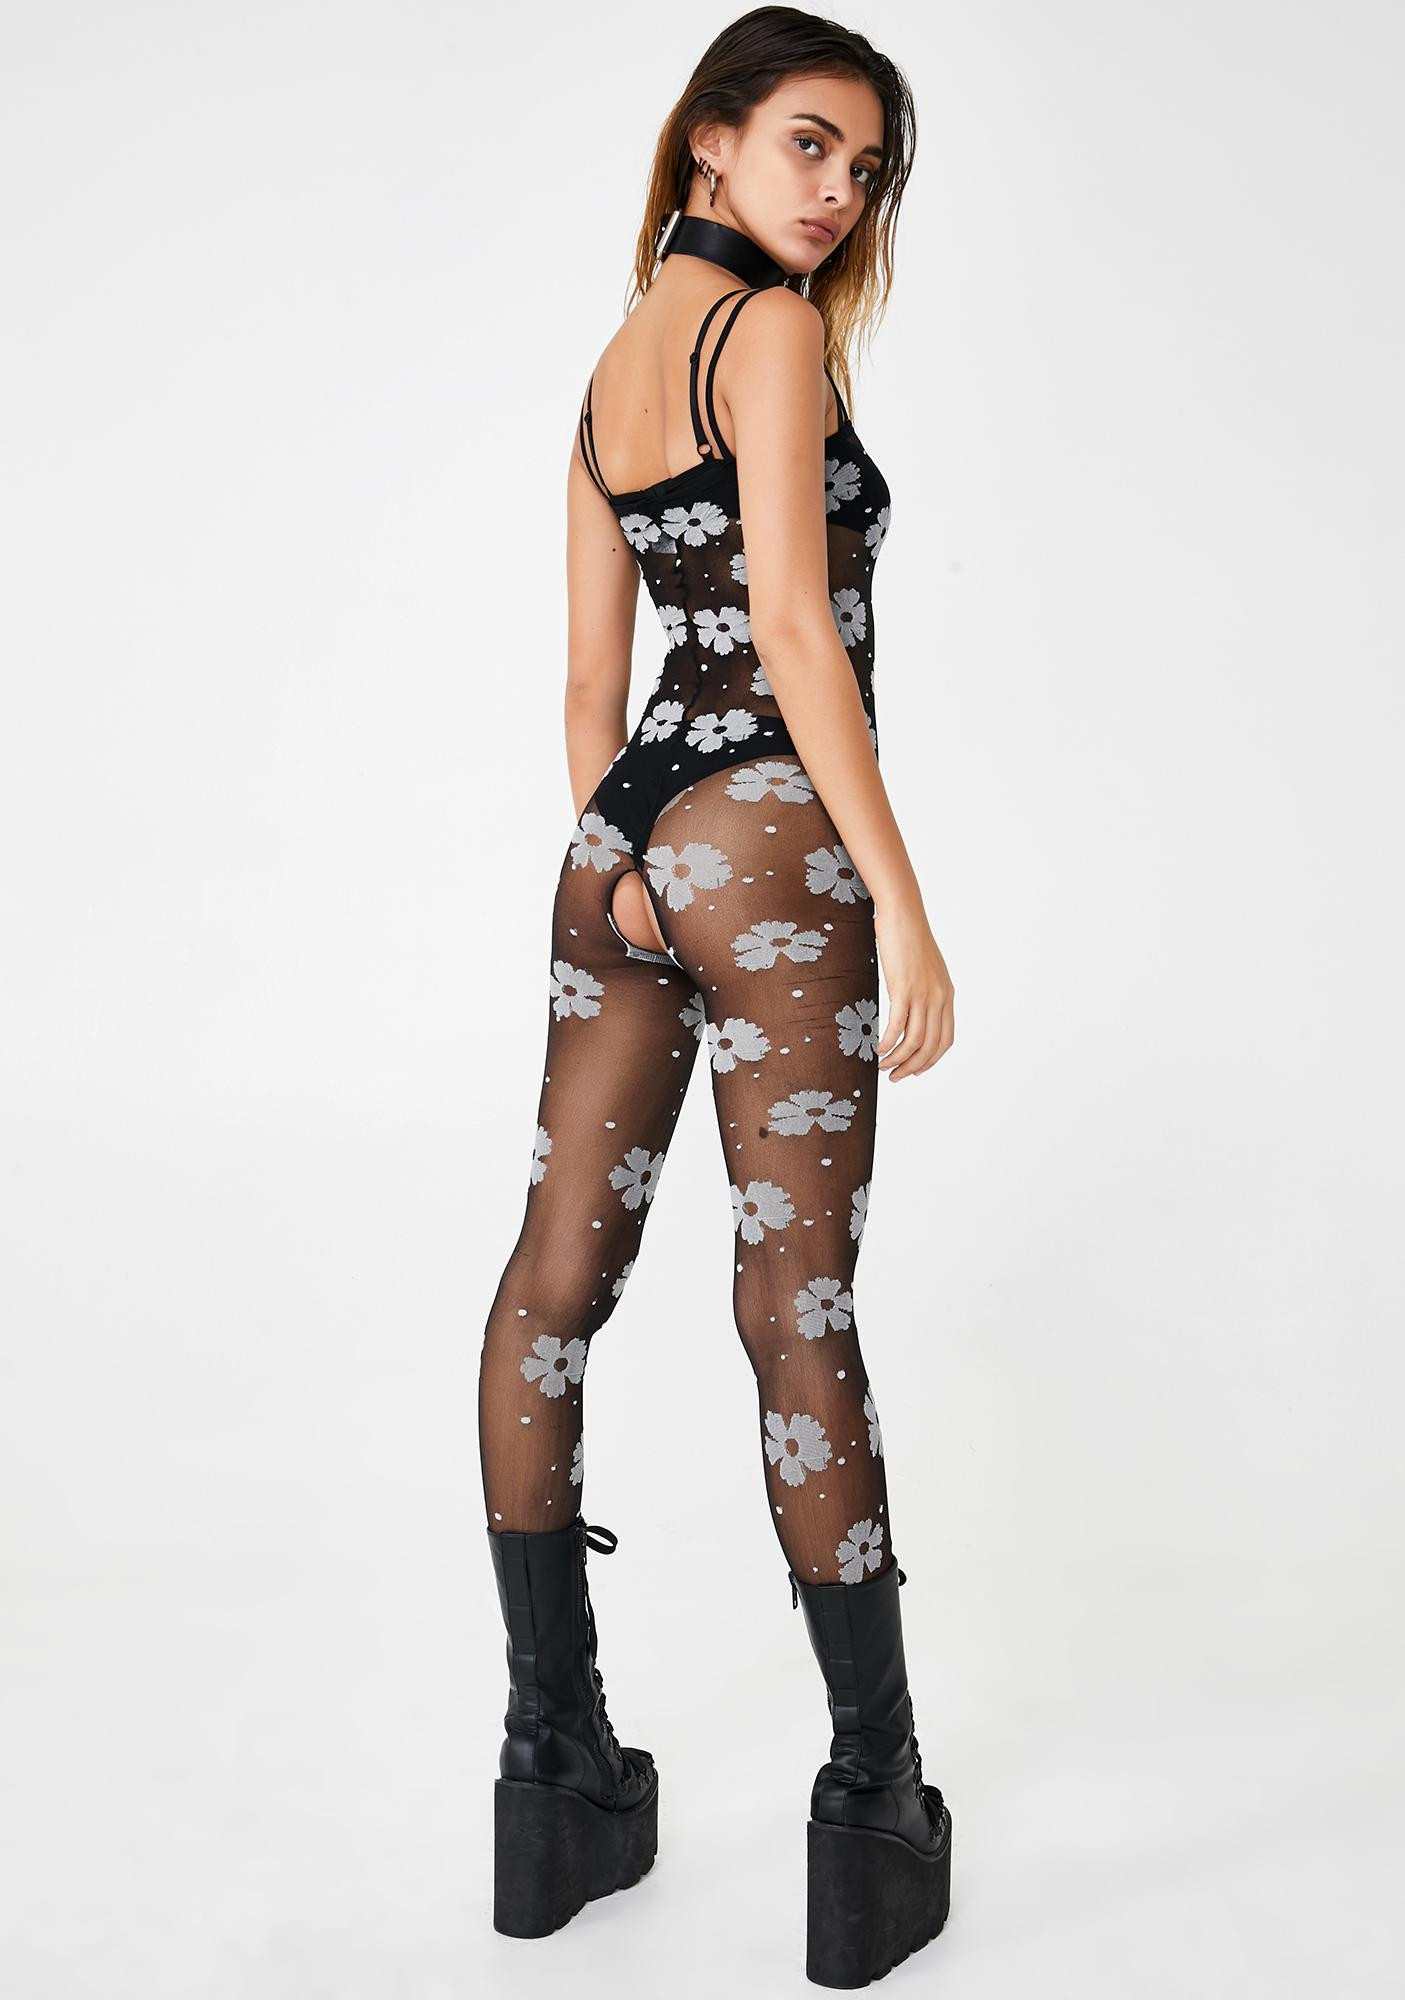 Floral Fixation Sheer Bodystocking